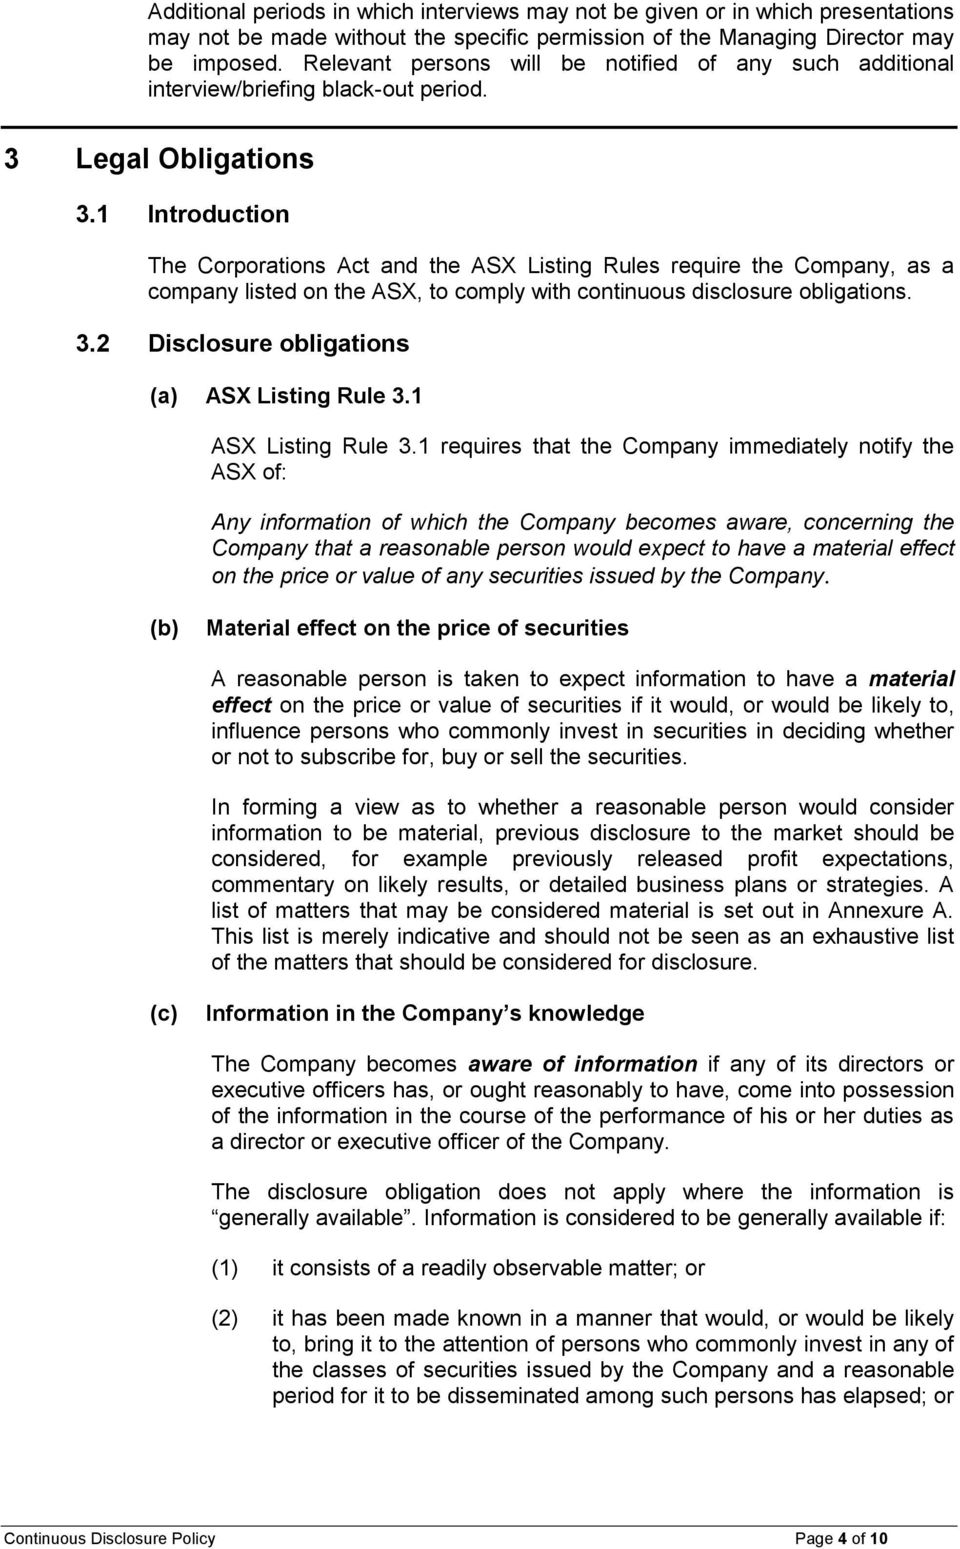 1 Introduction The Corporations Act and the ASX Listing Rules require the Company, as a company listed on the ASX, to comply with continuous disclosure obligations. 3.